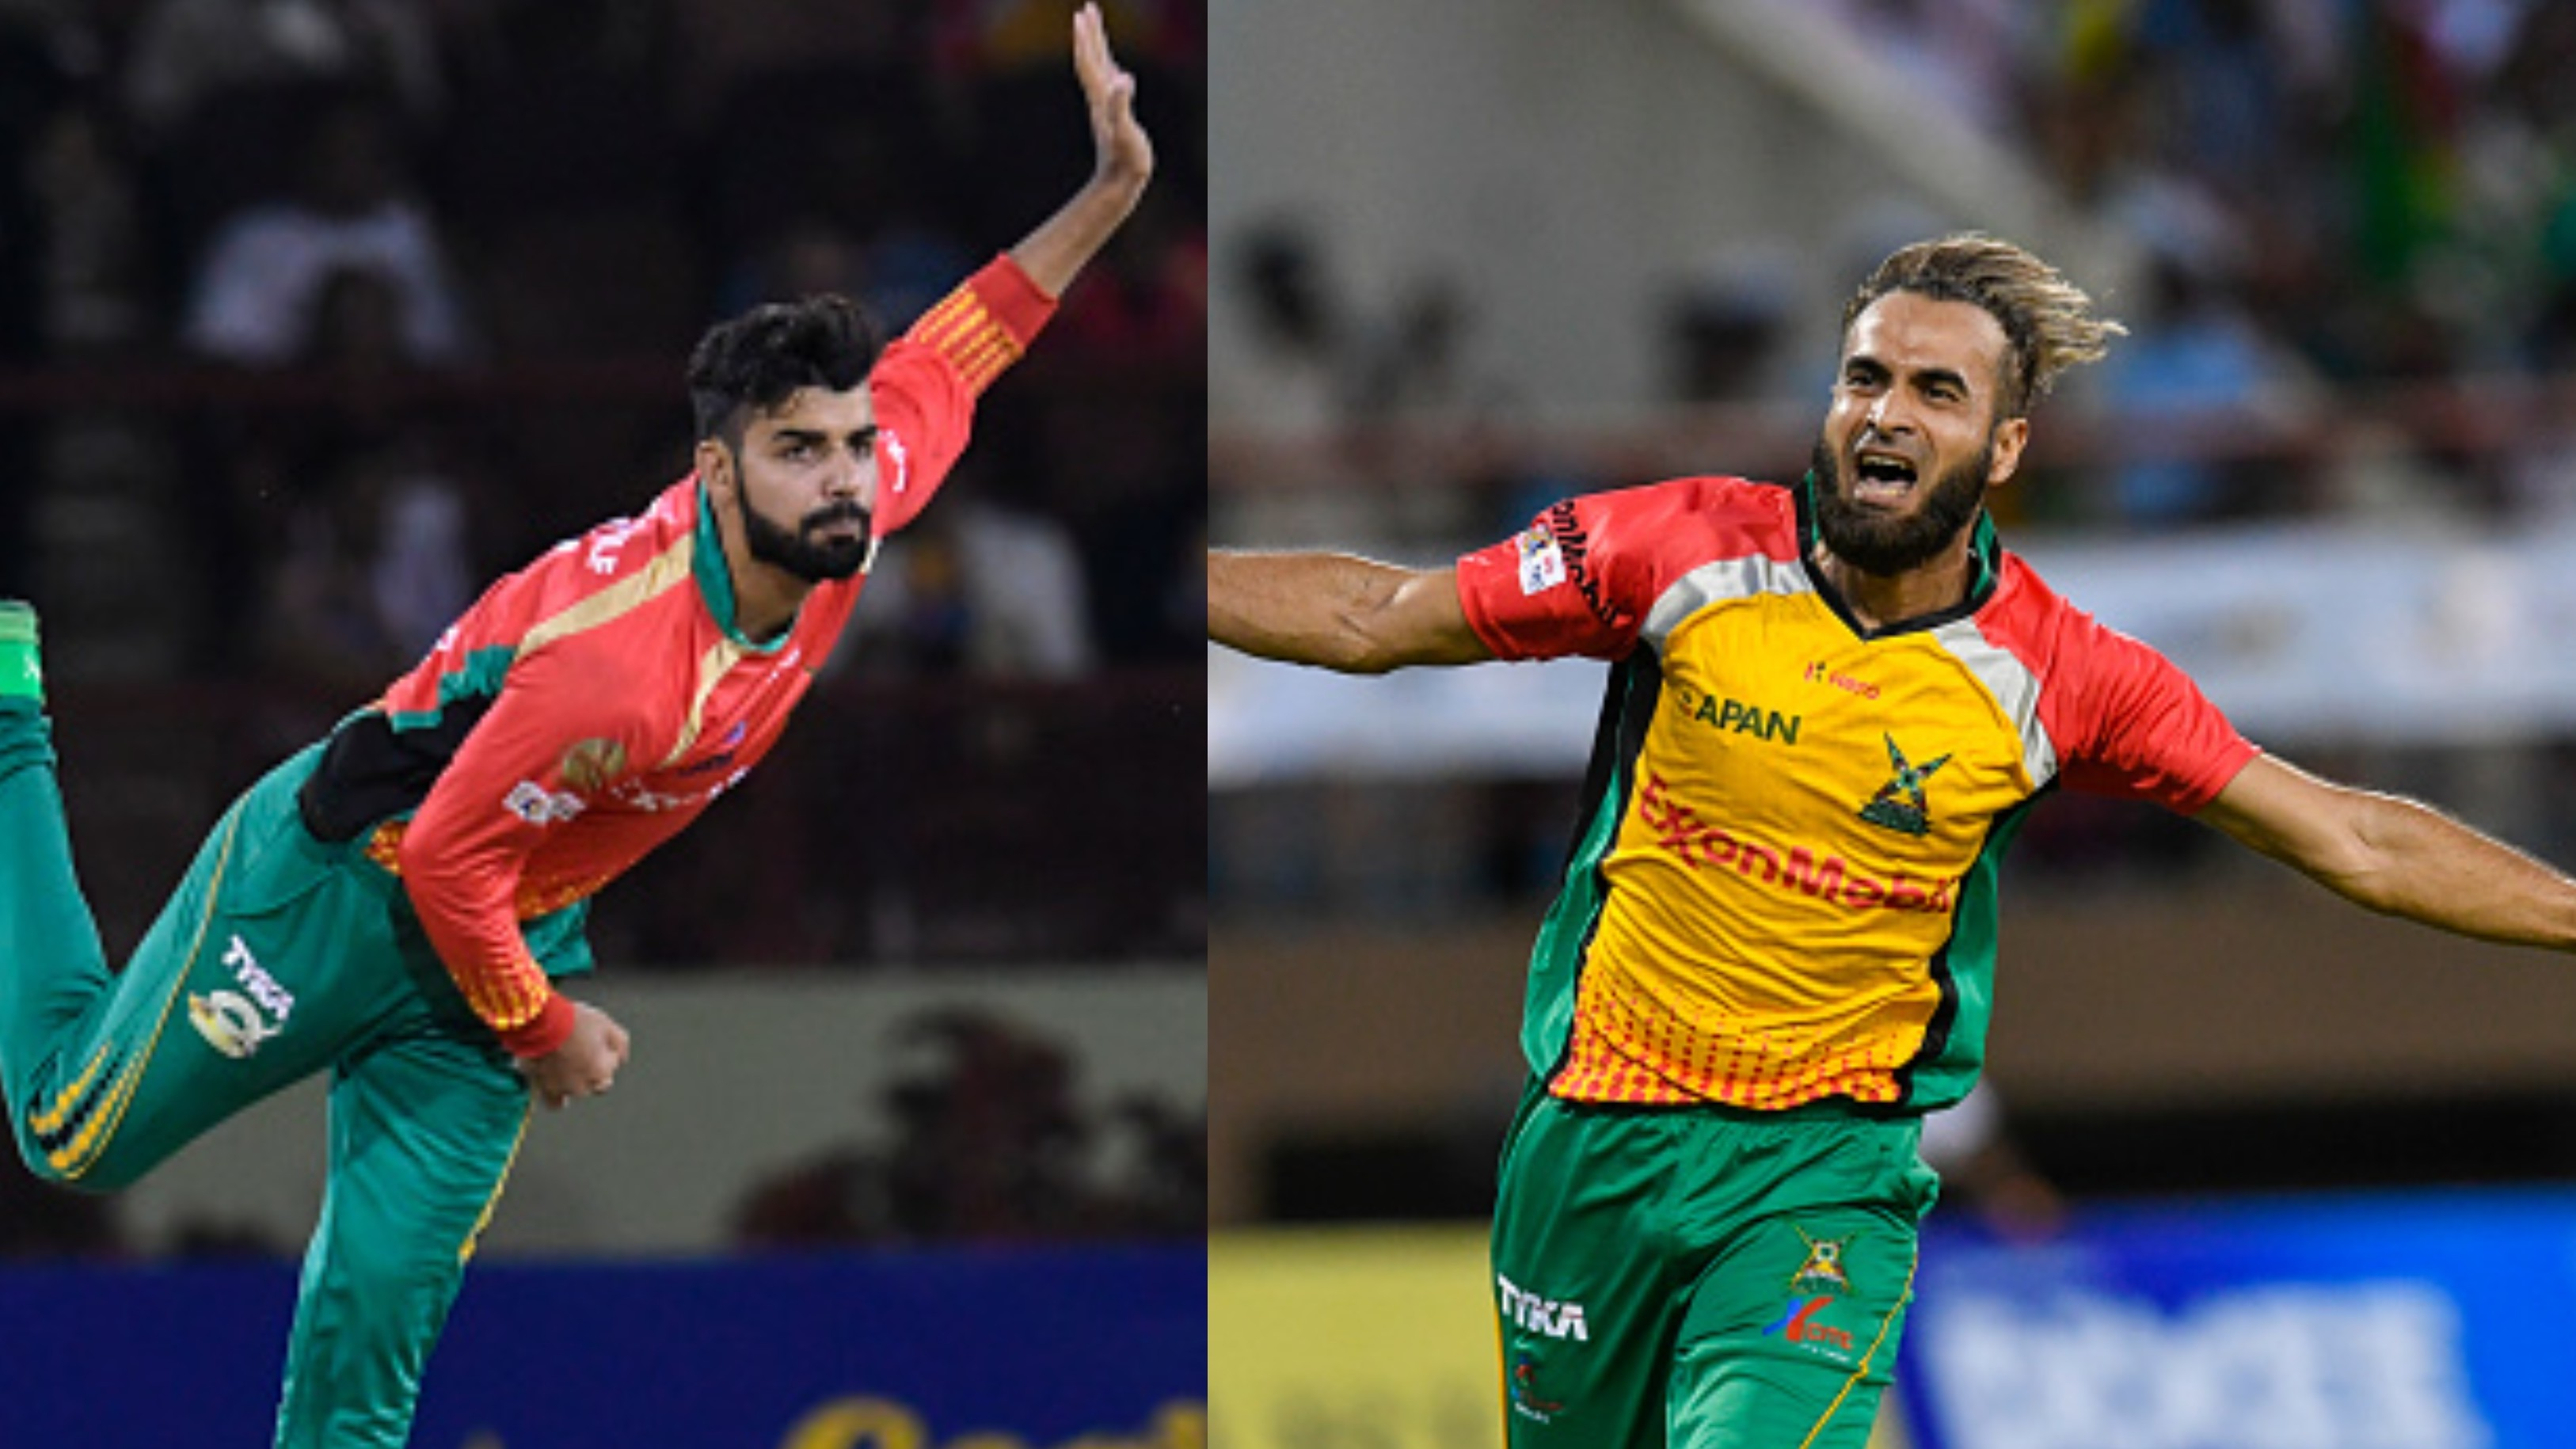 CPL 2019: Imran Tahir rejoins Guyana Amazon Warriors, replaces Shadab Khan